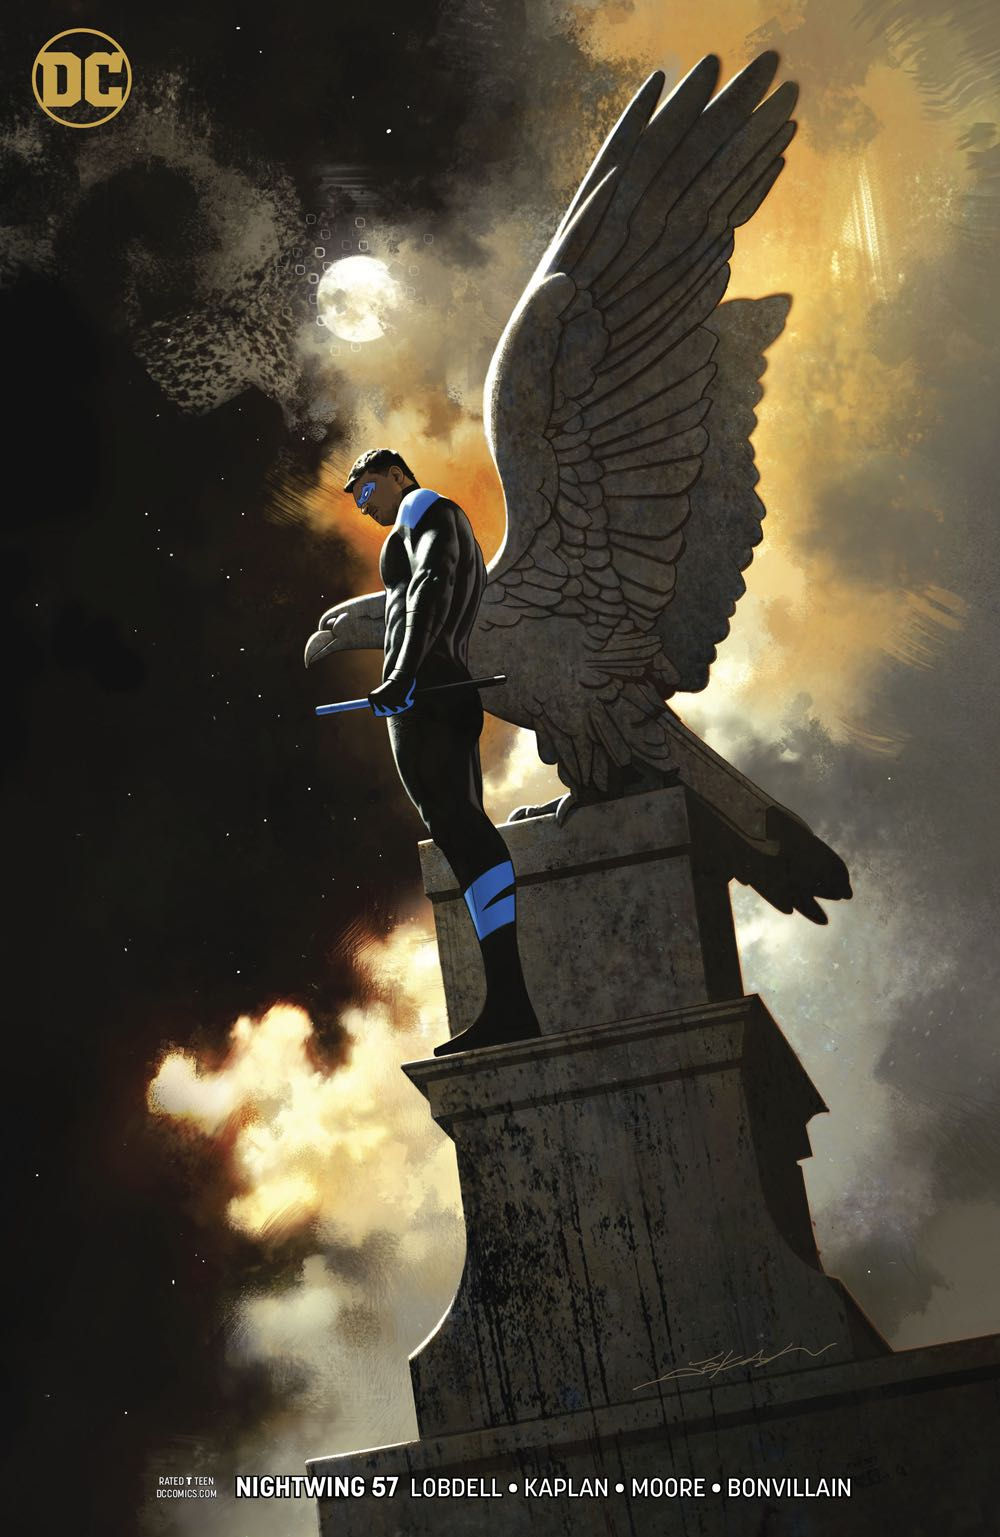 Episode 39 Variant of the Week! - (DC) Nightwing #57 (Dekal Variant)Cover by Jeff DekalWritten by Scott LobdellIllustrated by Travis MooreDid the Content Match the Drapes? - UNR